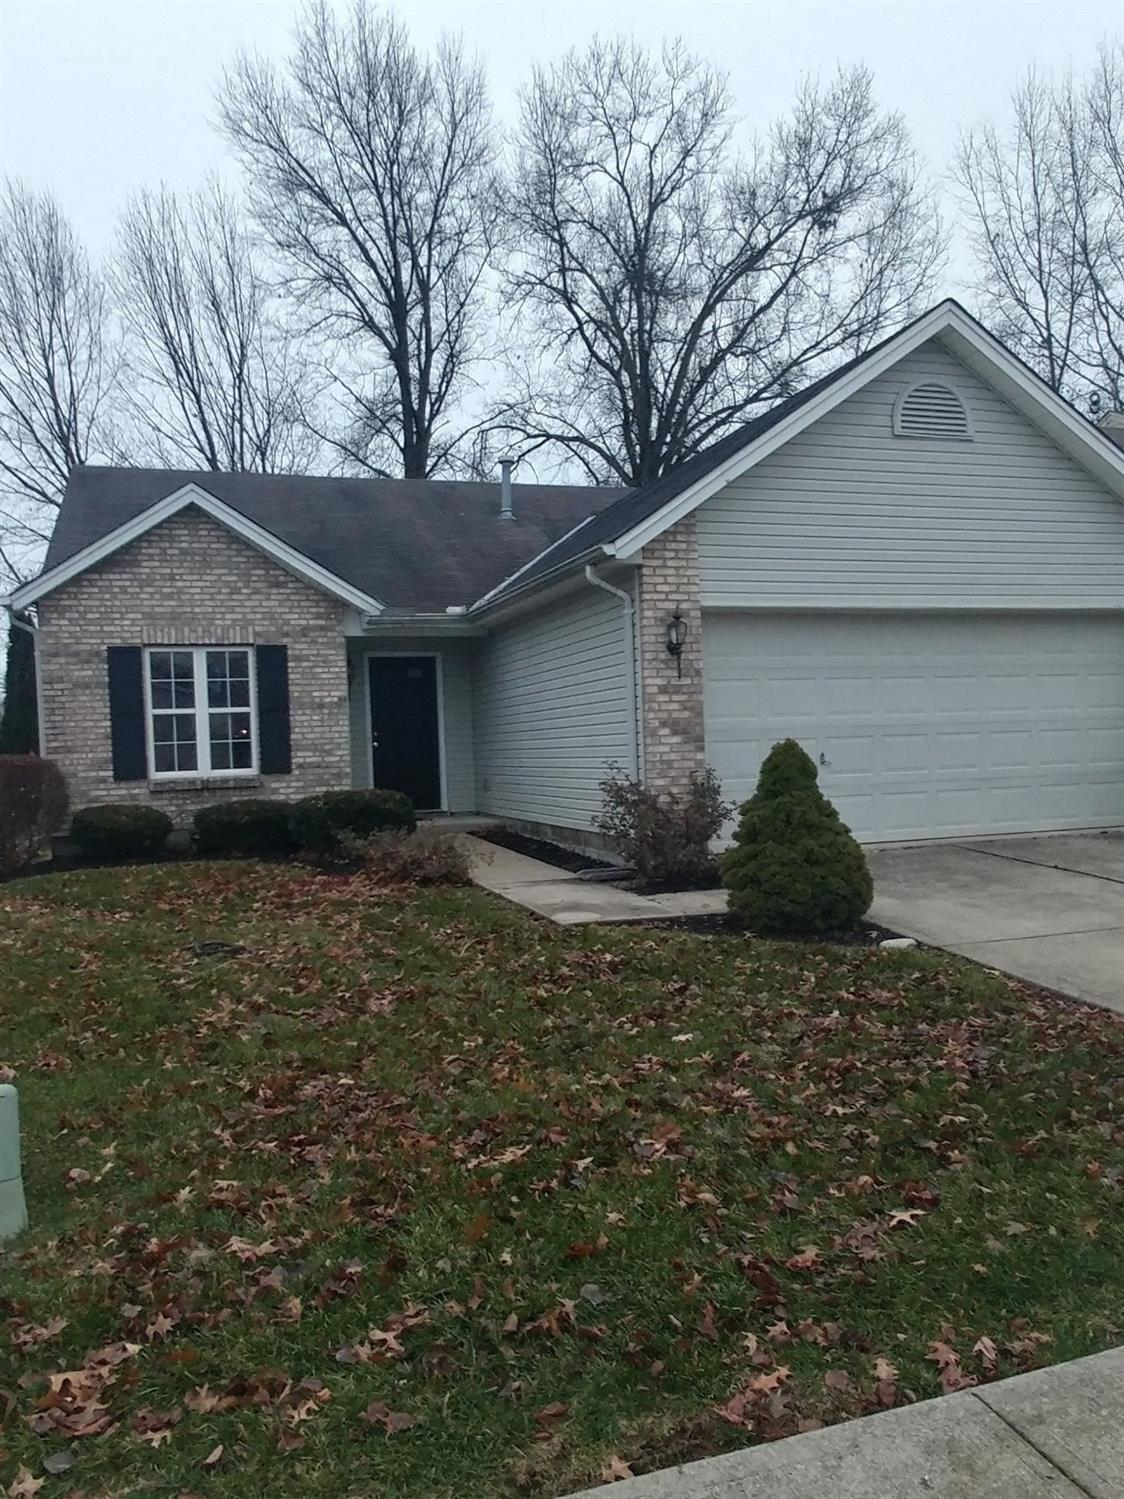 Property for sale at 8410 Nightshade Drive, Hamilton Twp,  OH 45039